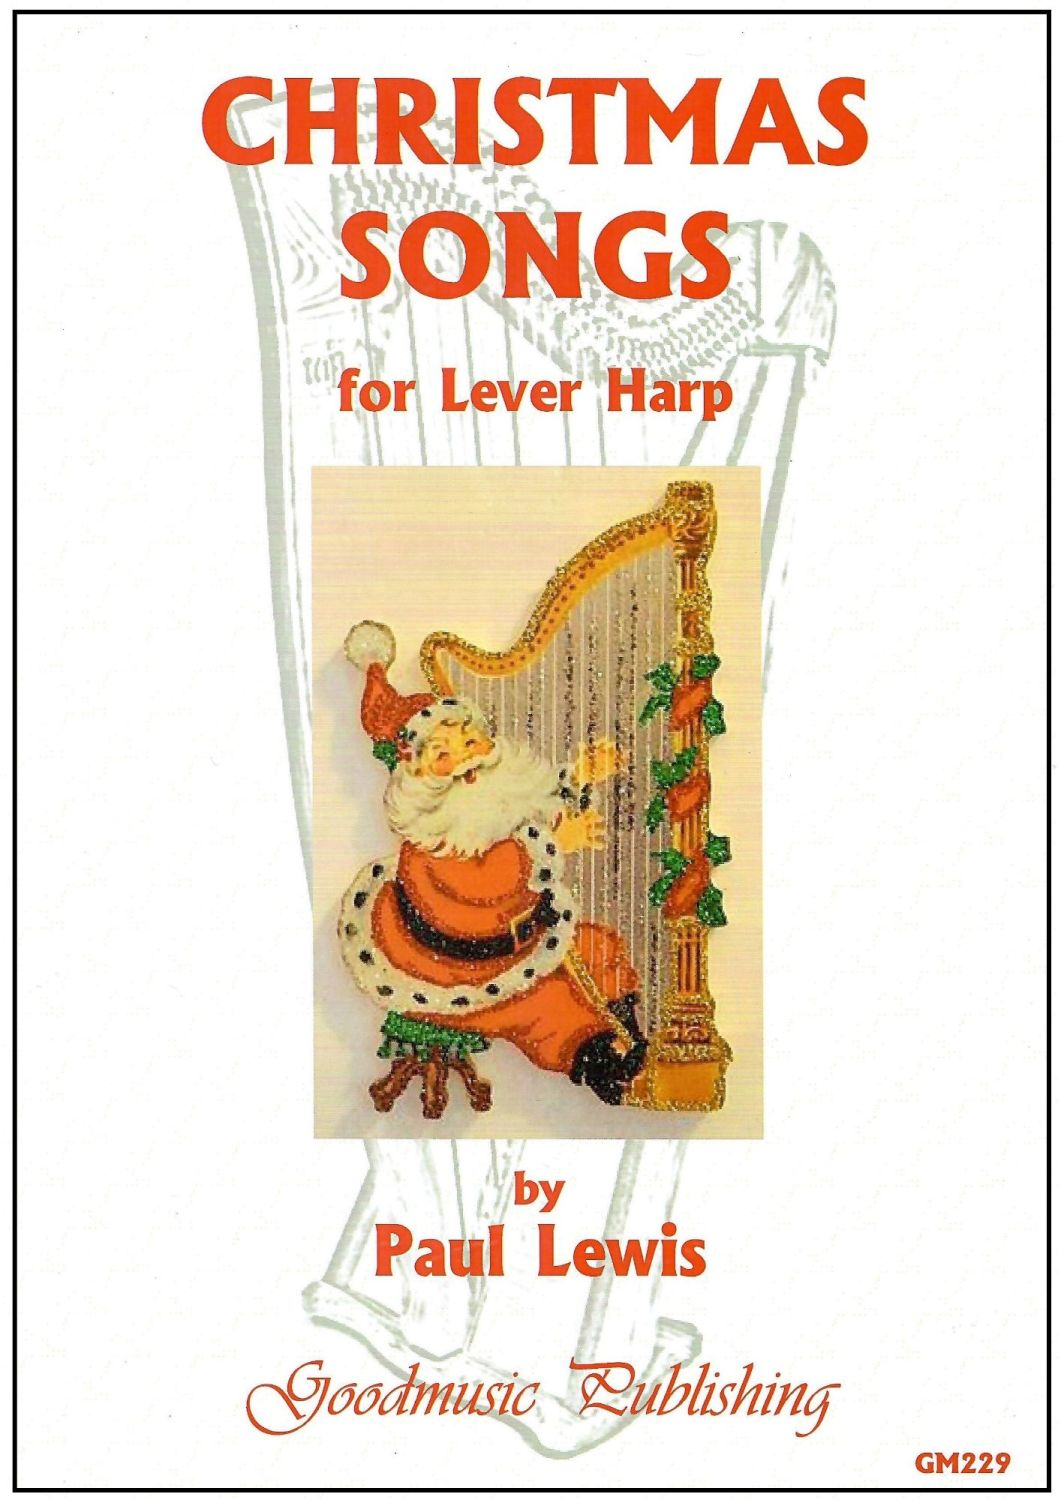 Christmas Songs for Lever Harp - Paul Lewis